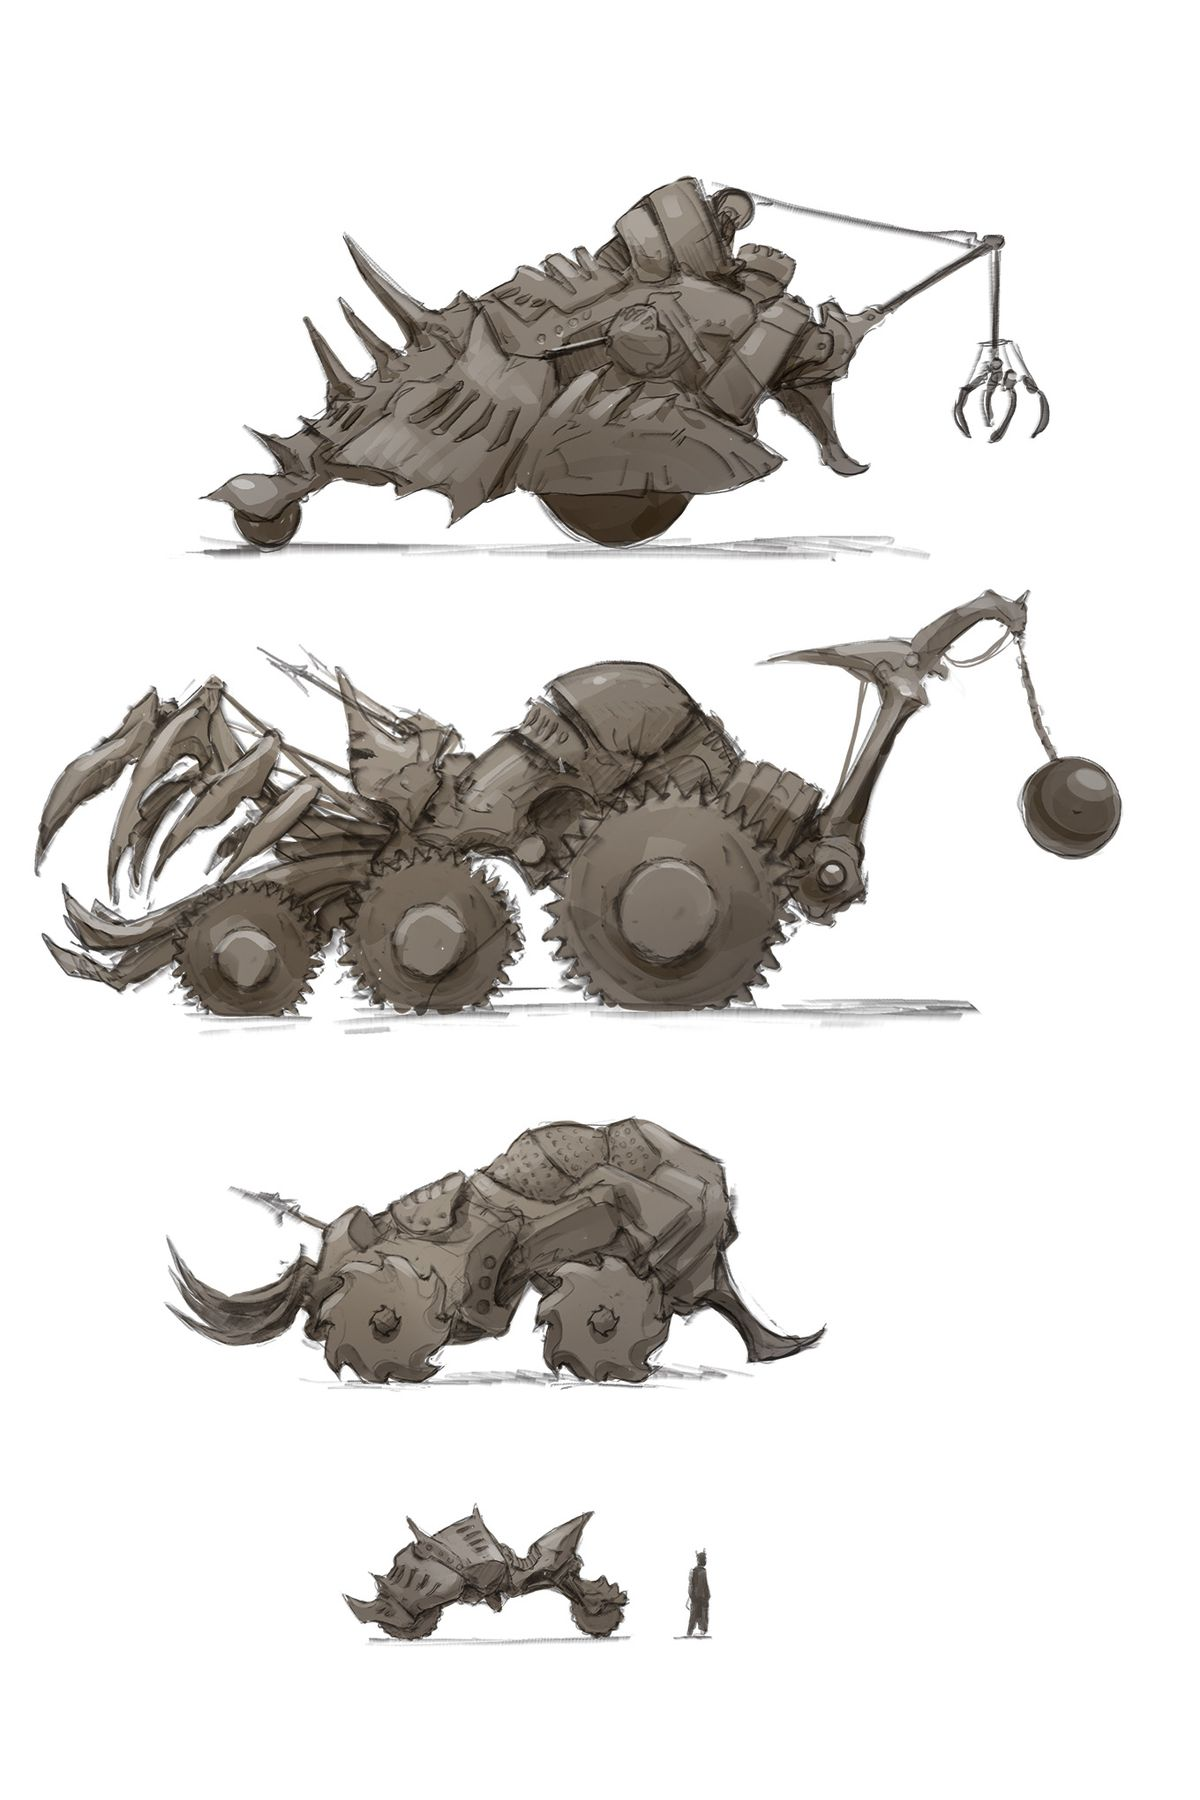 Four Infernal War Machines rendered in muted gray colors and simple line drawings from Baldur's Gate: Descent Into Avernus. Each one is bristling with spikes and harpoons. One has a wrecking ball, and another a wicked-looking claw.